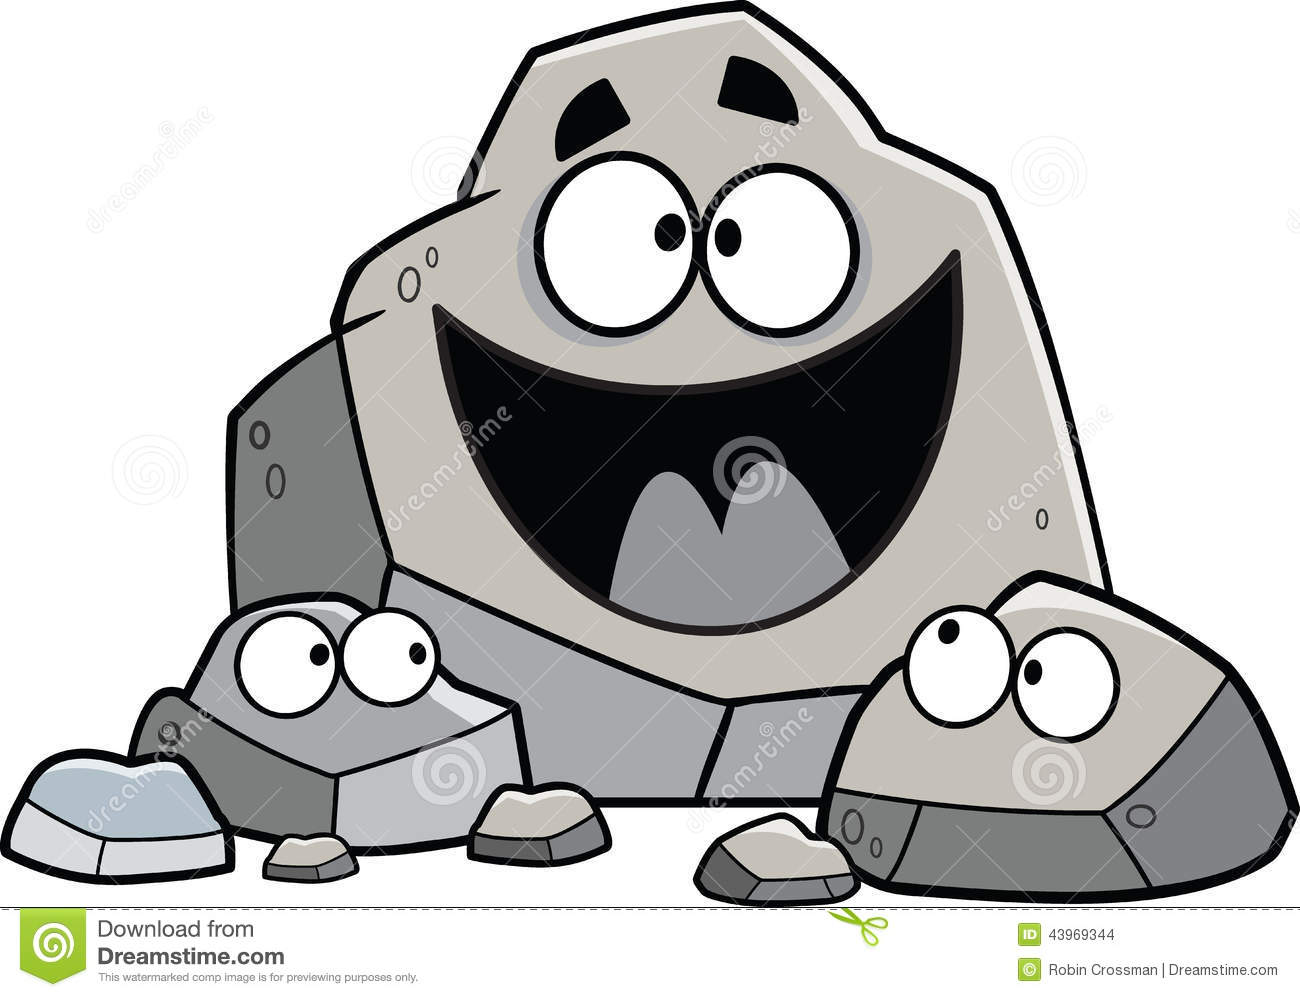 Illustrated set of cartoon rocks with a family theme.